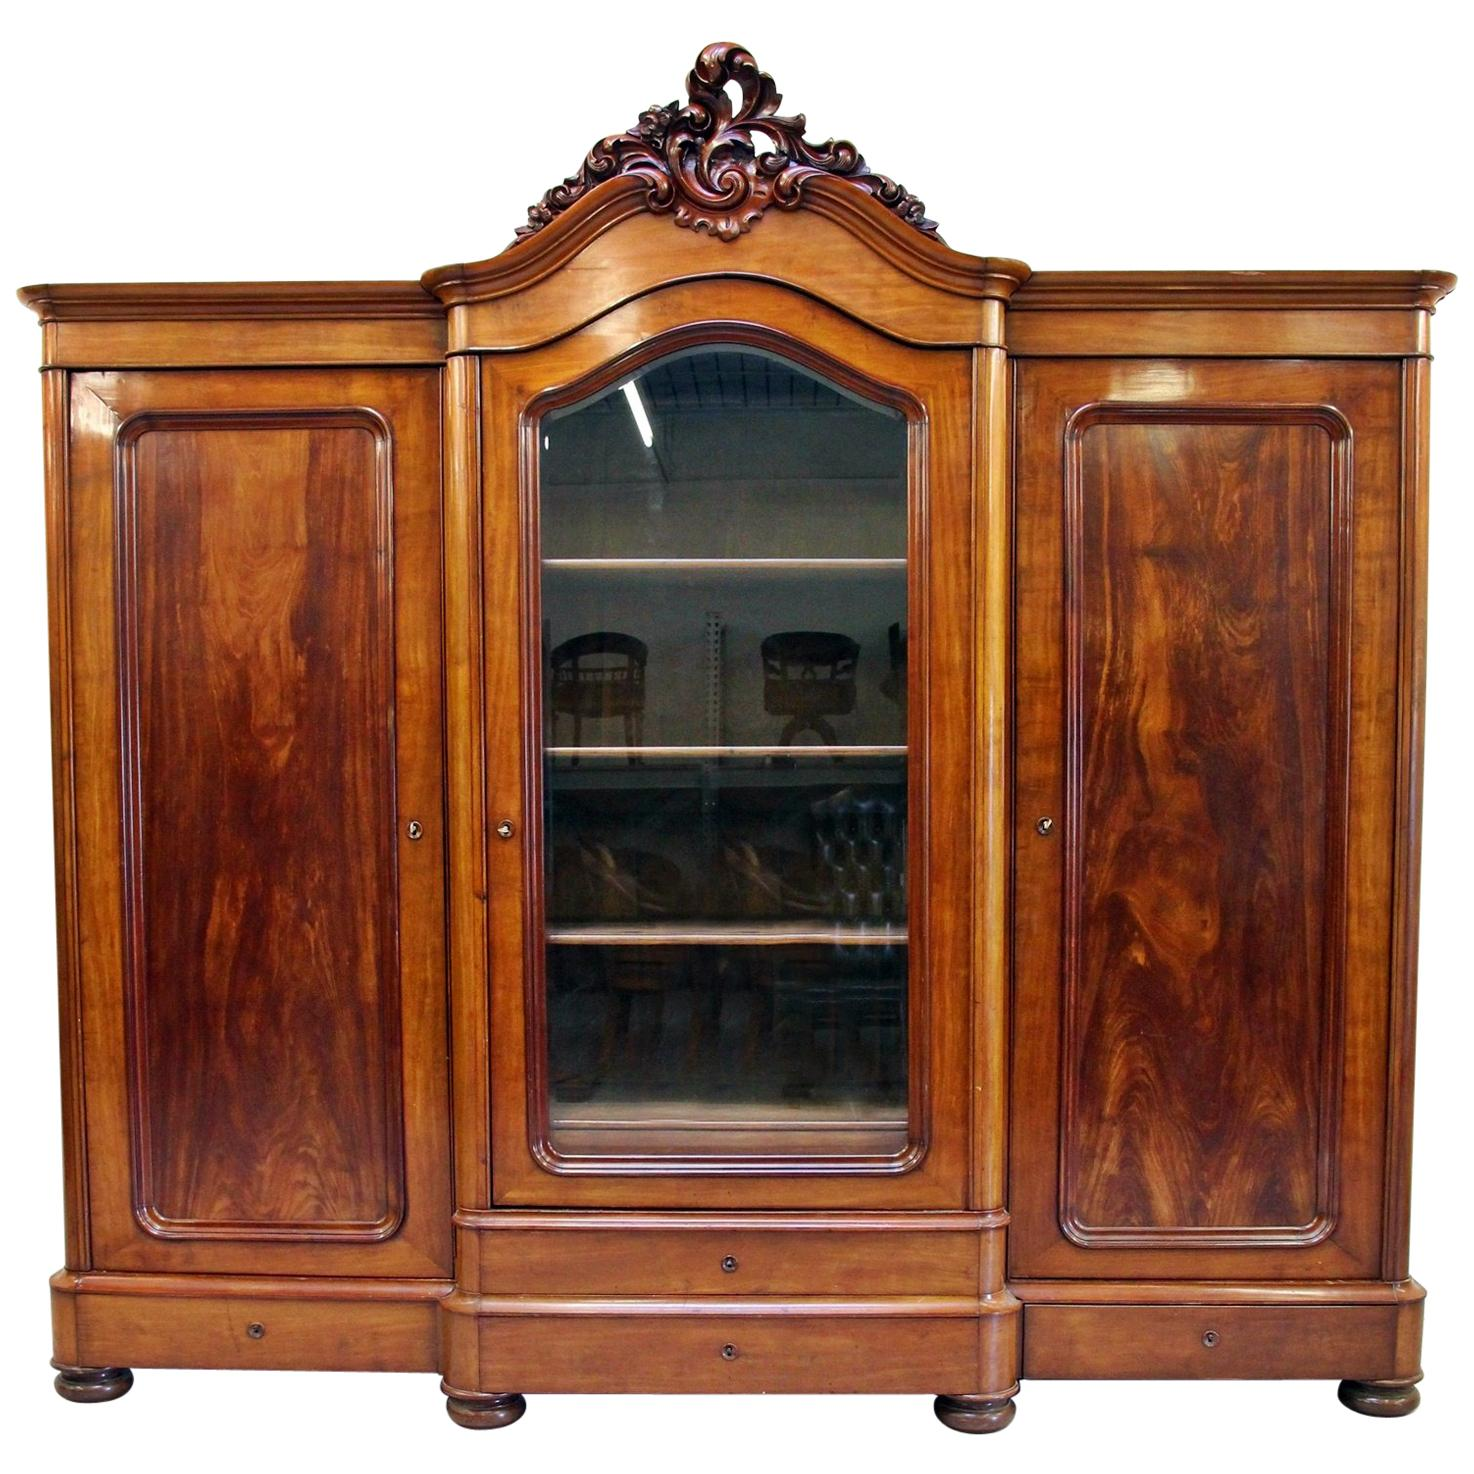 Wardrobe Bookcase Antique Baroque Cabinet Showcase Extra Large For Sale